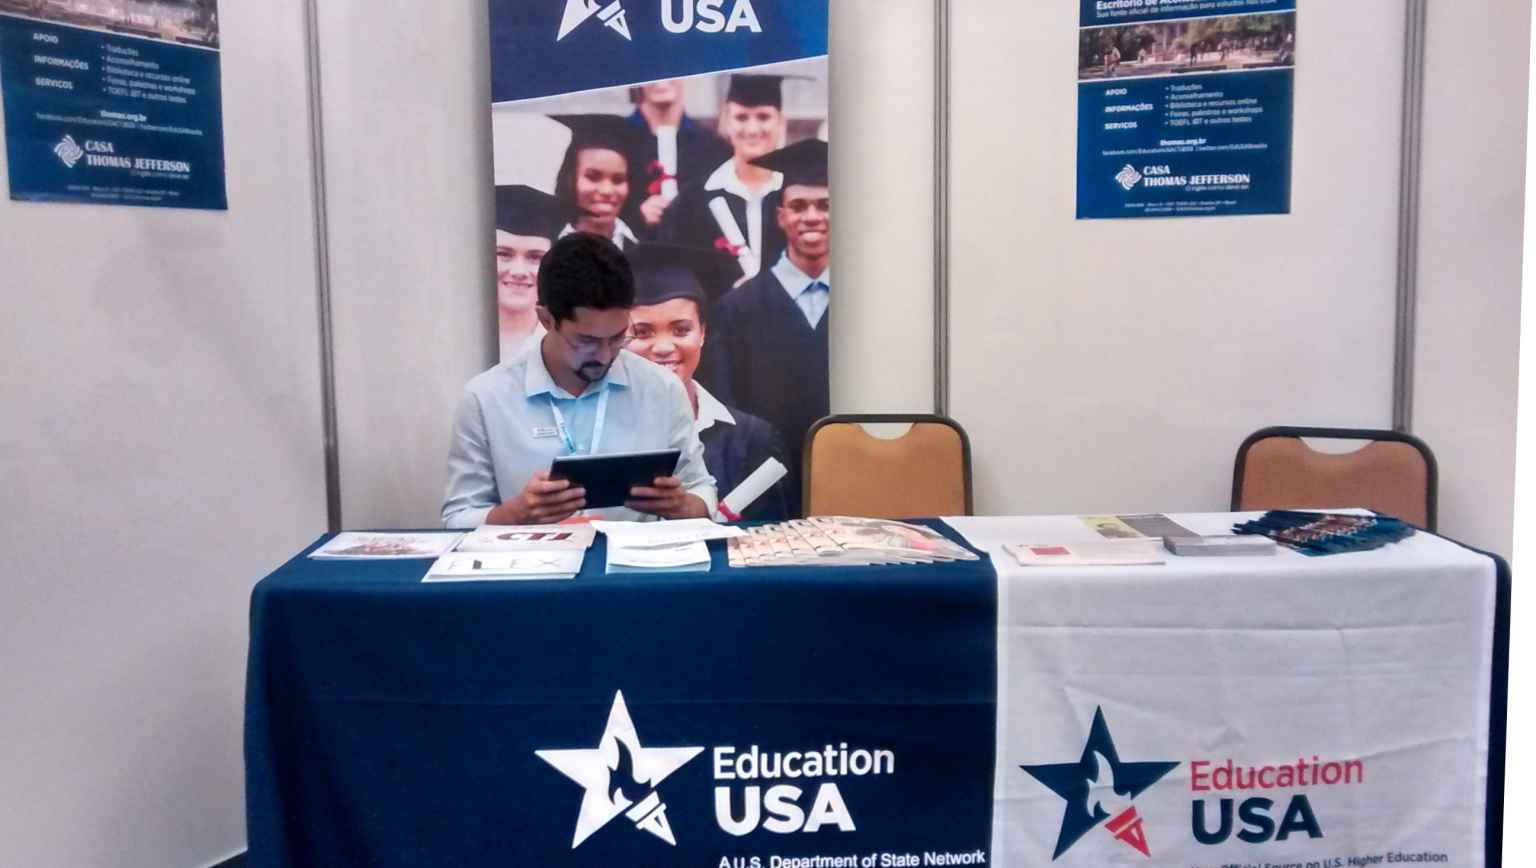 International studies avdisor at EducationUSA Stand atfair in Brasilia, Brazil